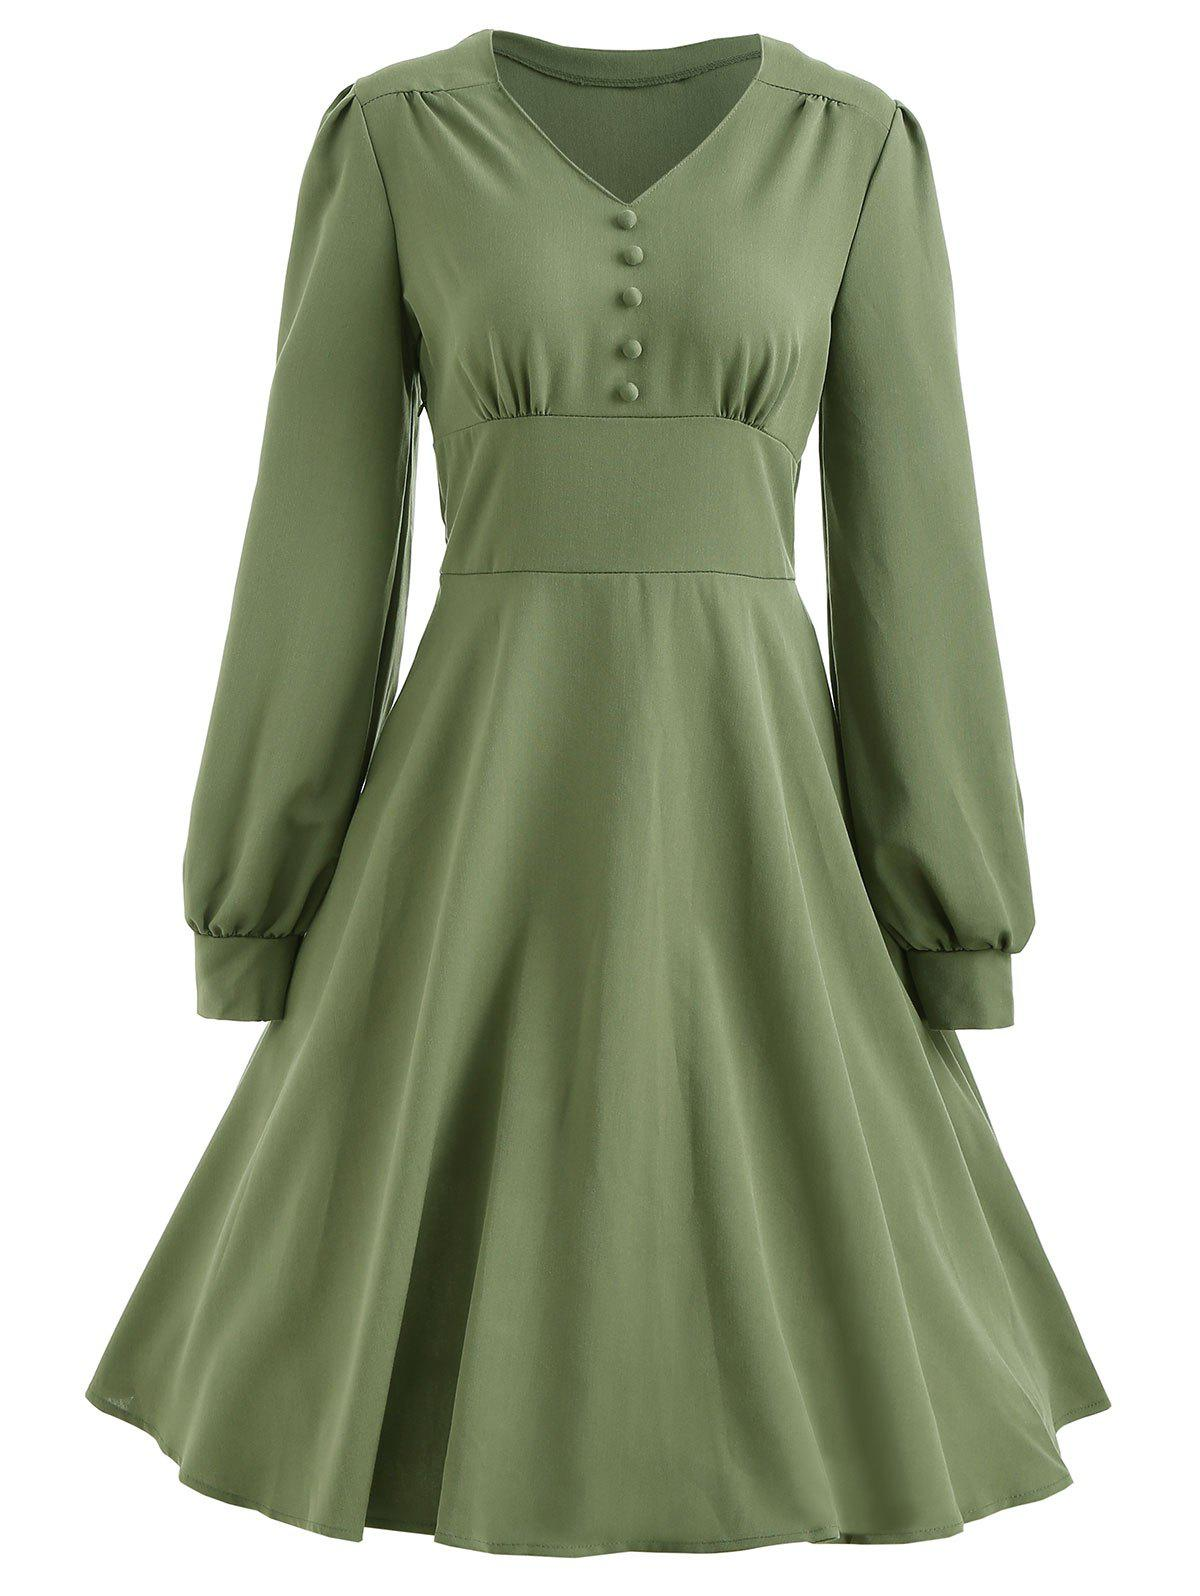 Store Long Sleeve Button Vintage Dress